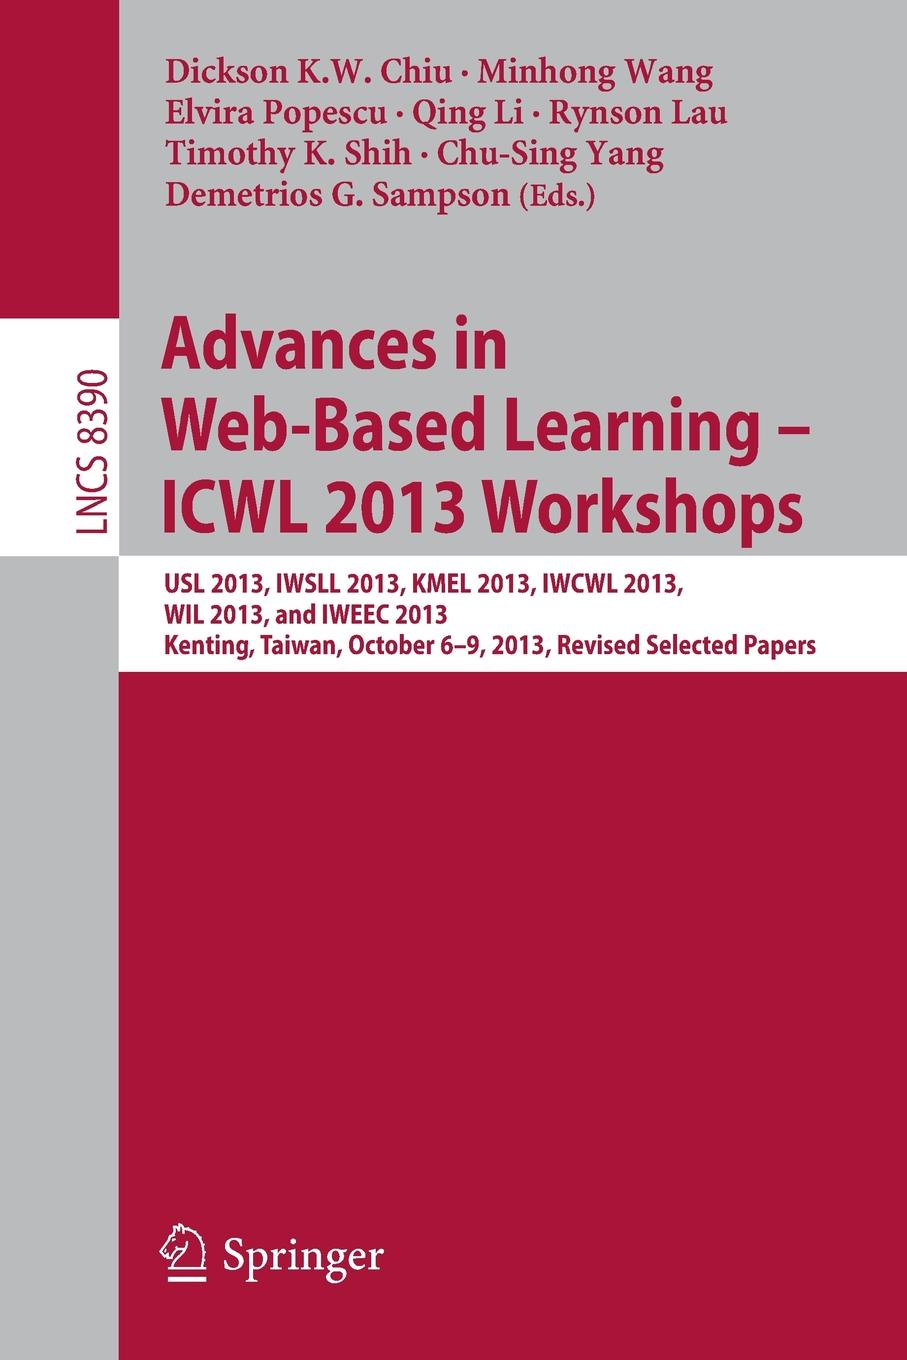 Advances in Web-Based Learning - ICWL 2013 Workshops USL 2013 IWSLL 2013 KMEL 2013 IWCWL 2013 WIL 2013 and IWEEC 2013 Kenting Taiwan October 6-9 2013 Revised Selected Papers